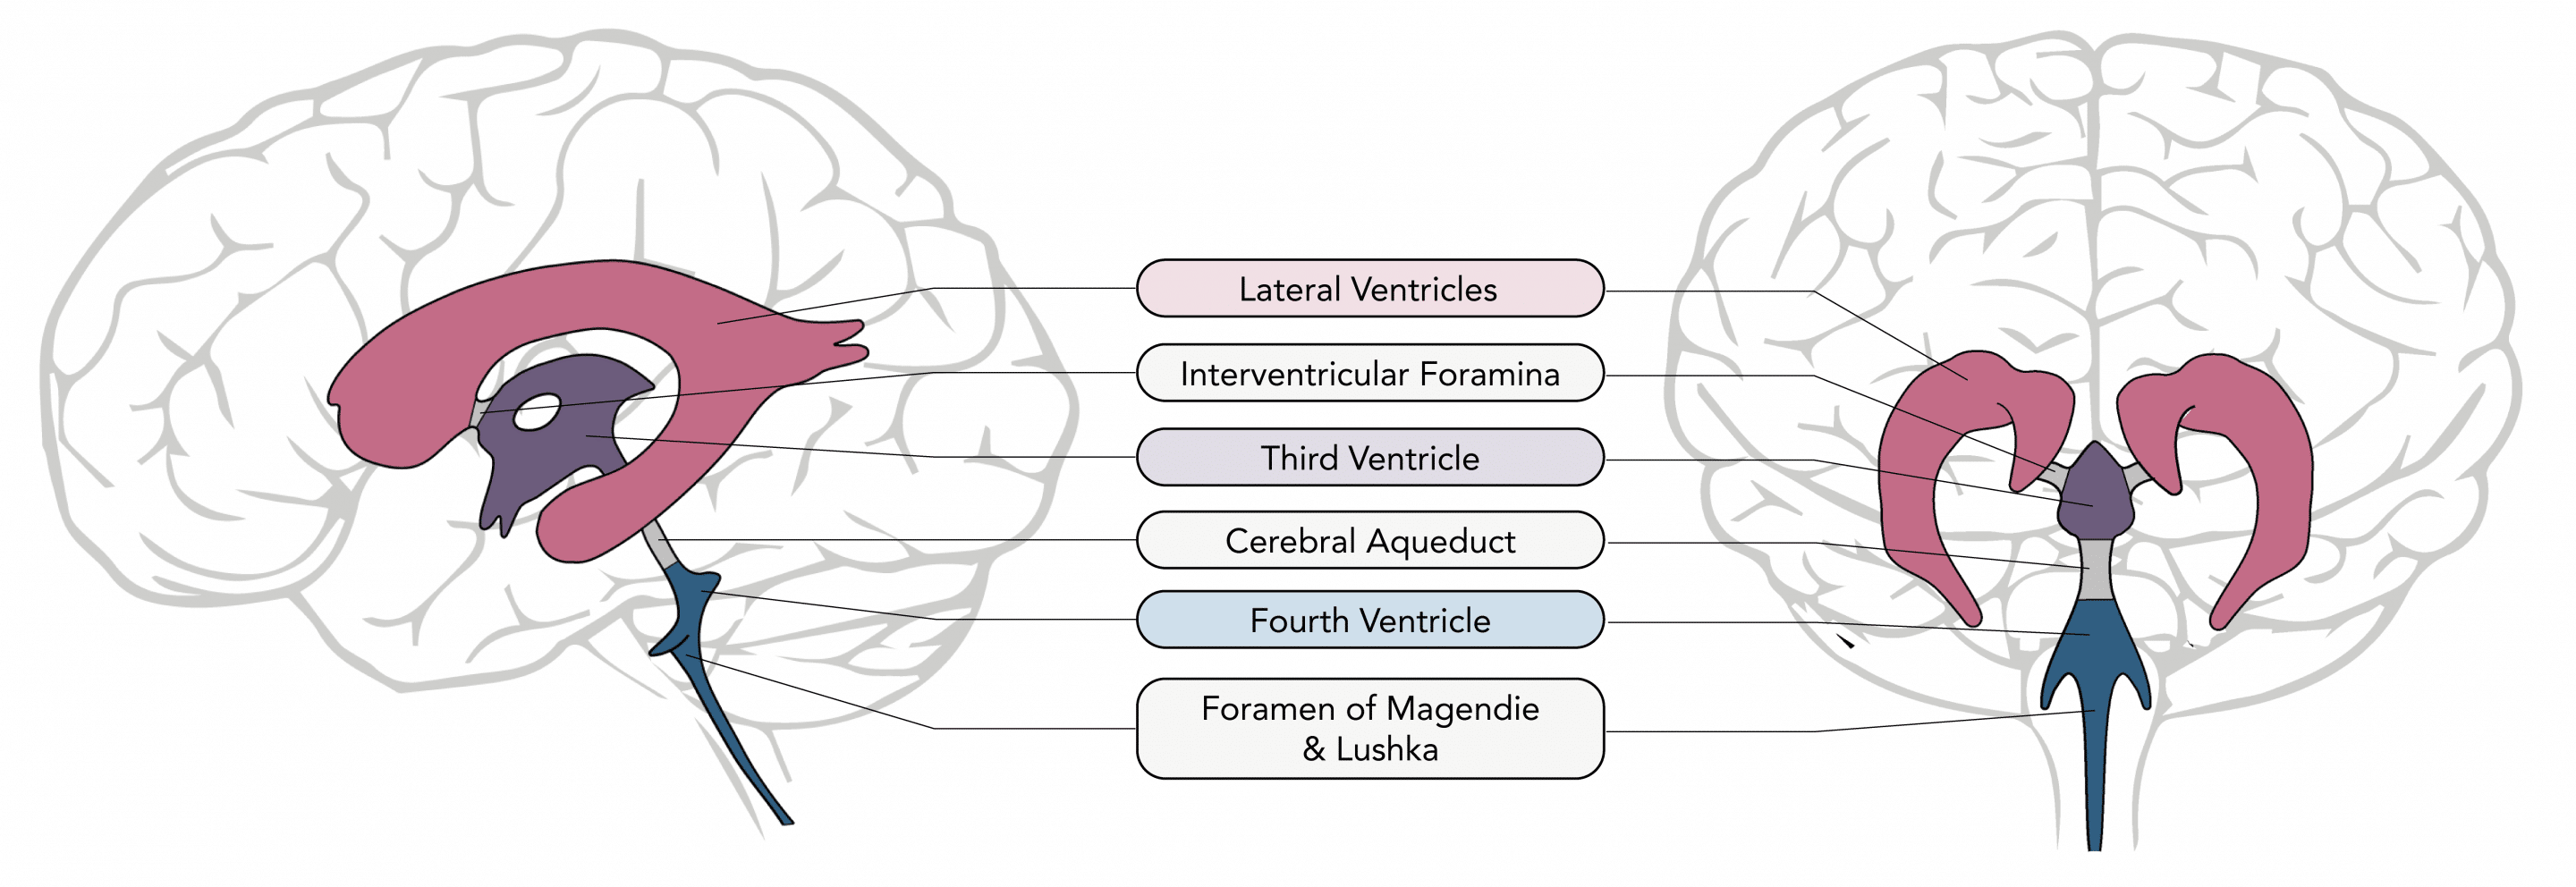 Structure of the ventricular system